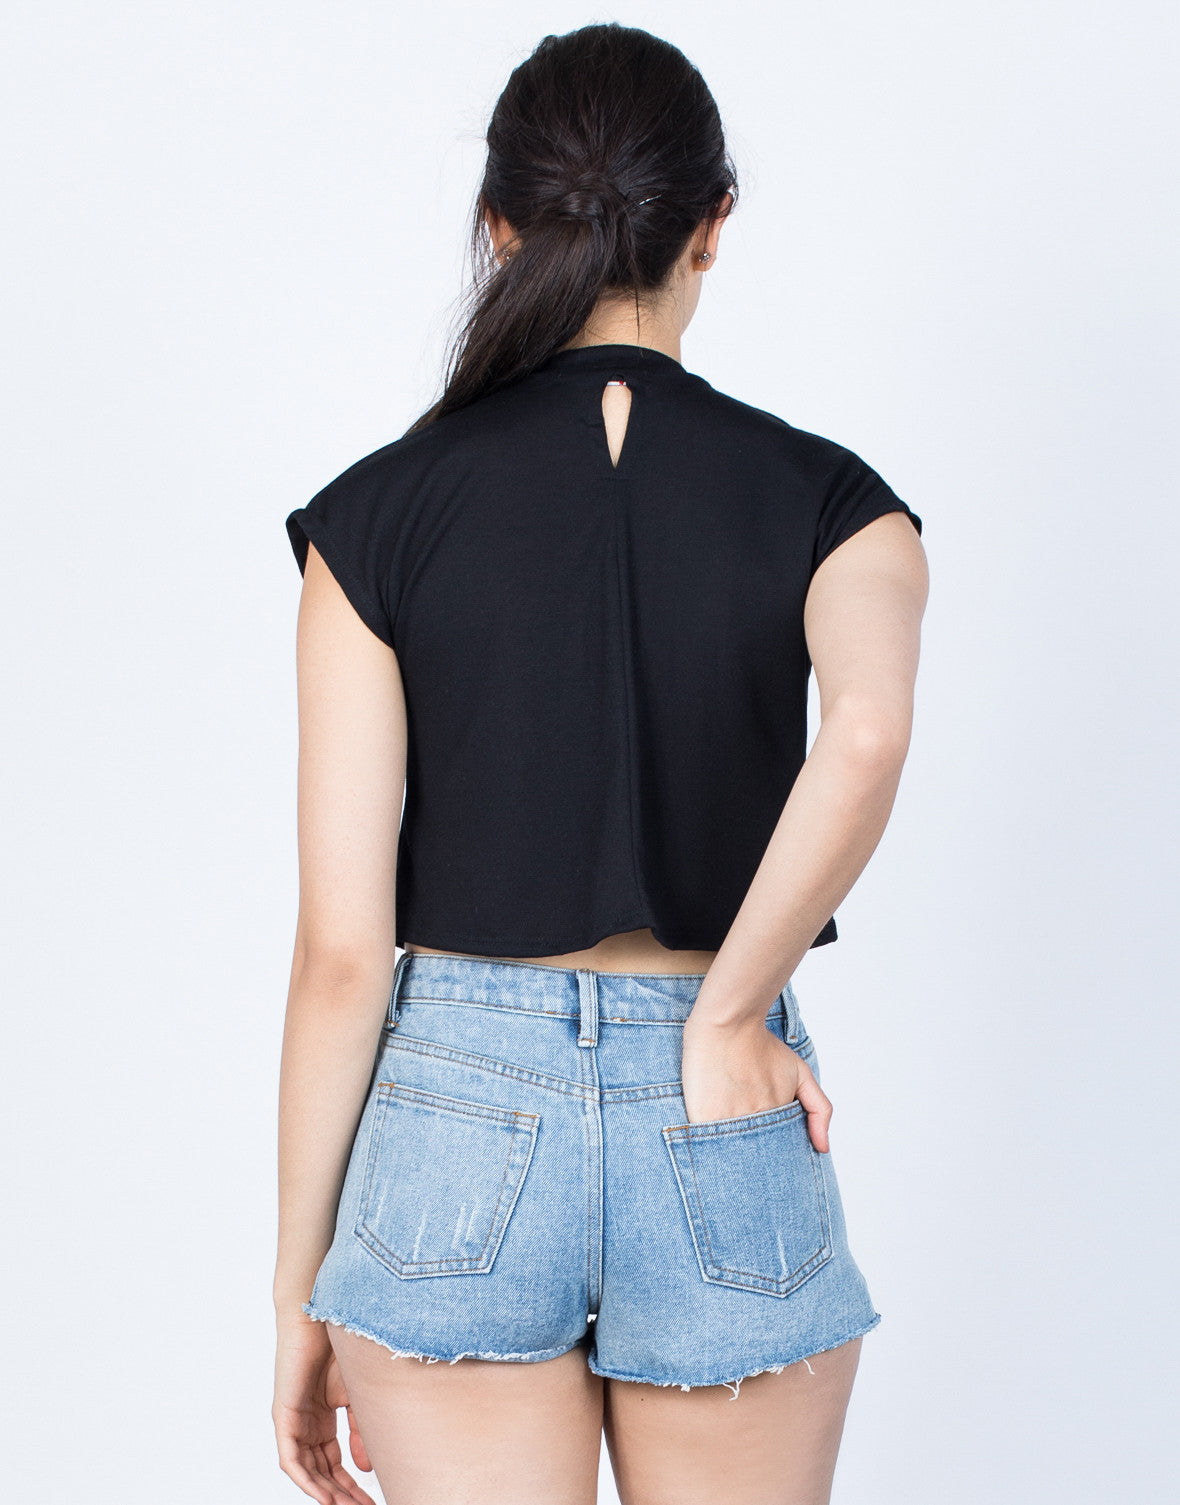 Back View of Lace Around Me Tee